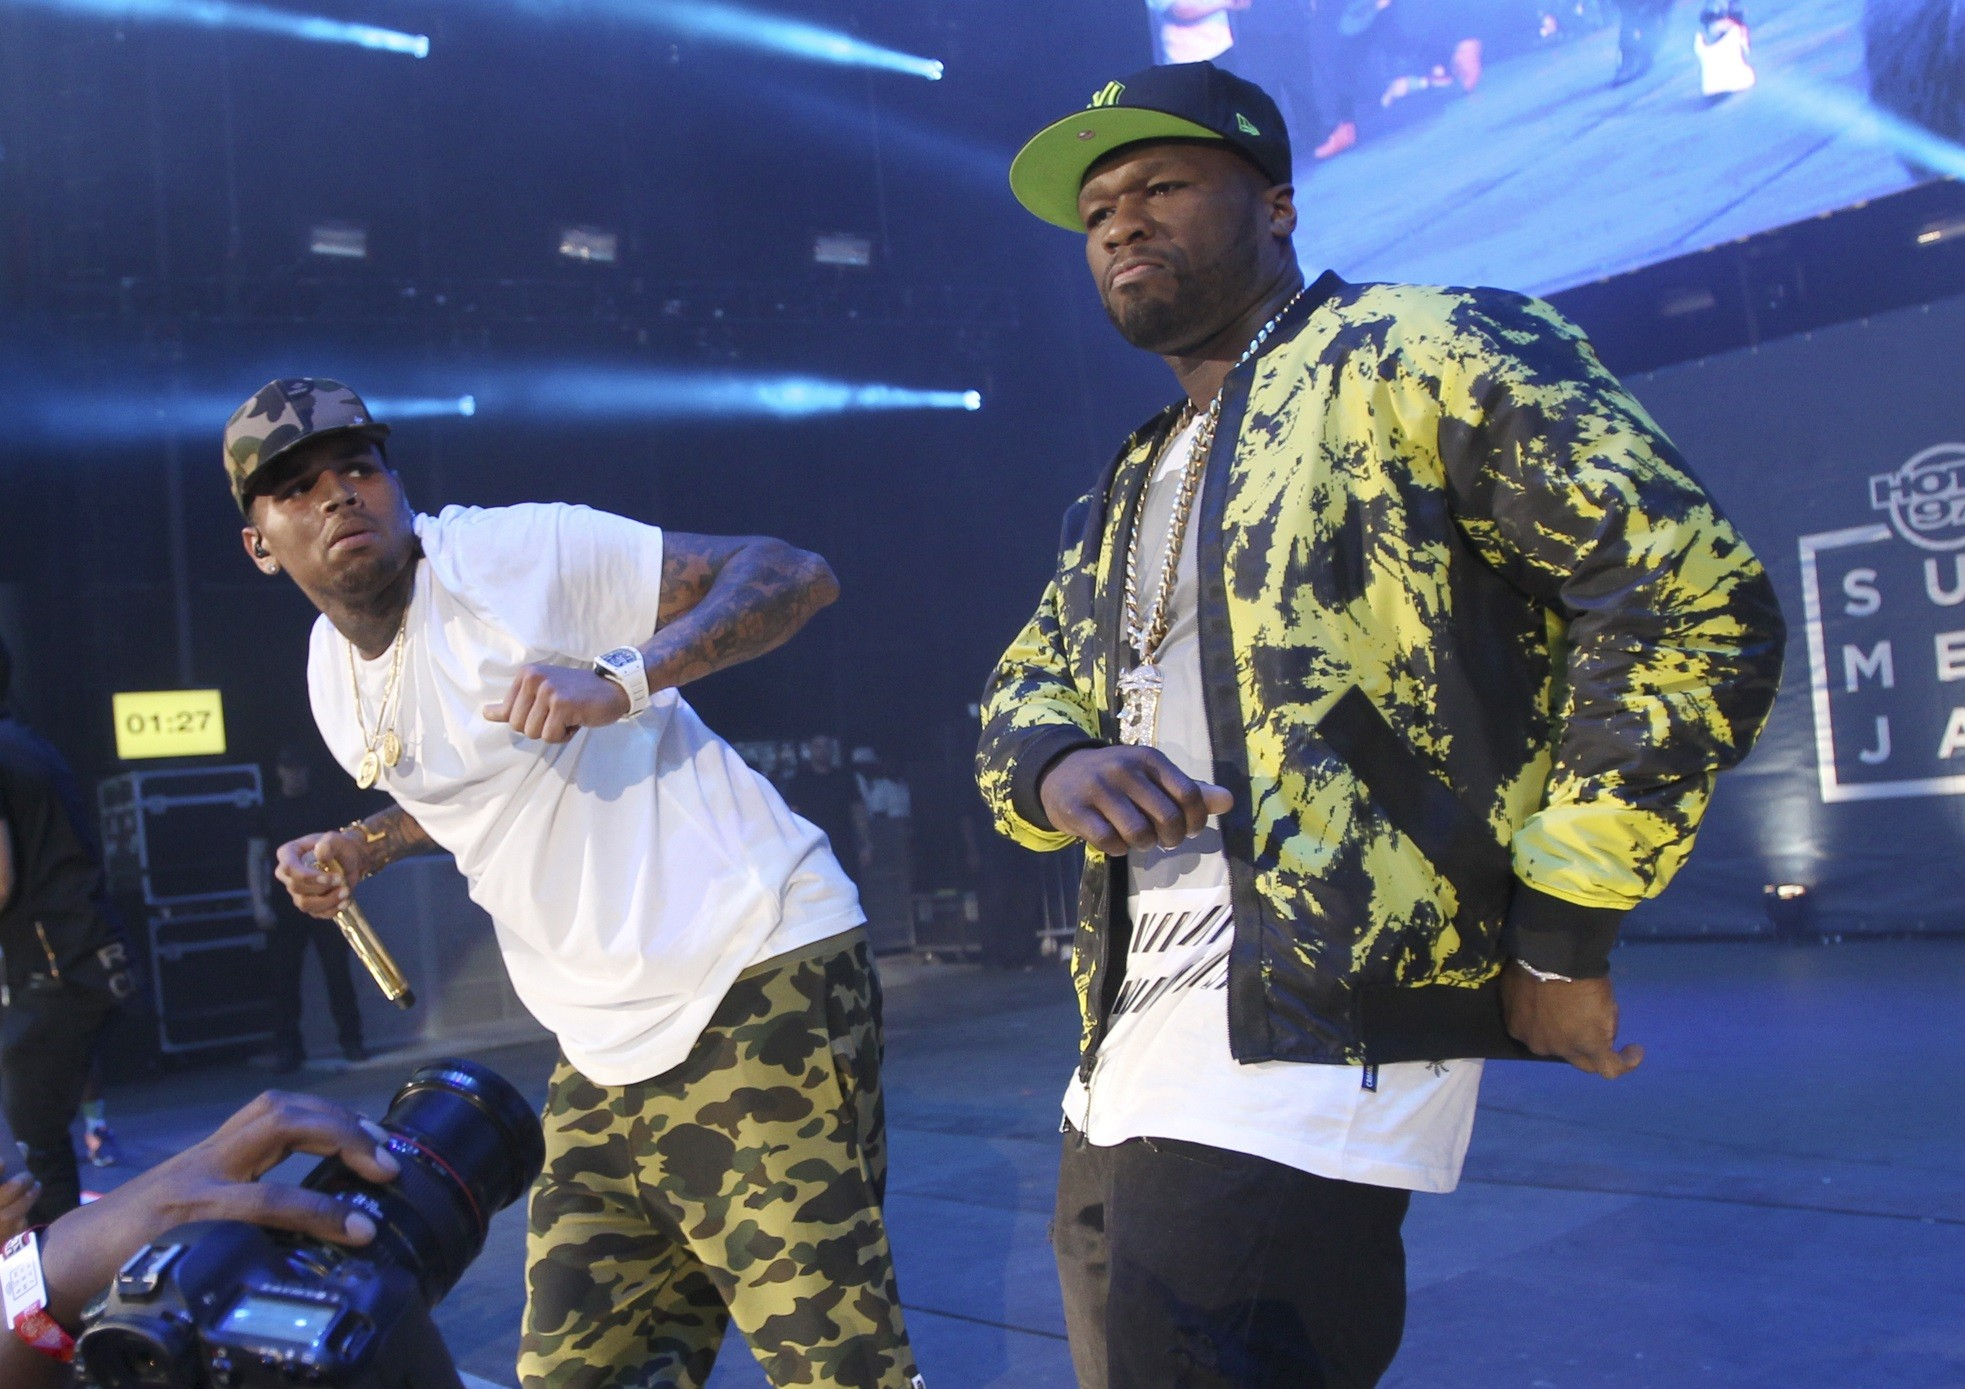 50 Cent lana 'No Romeo No Juliet' com Chris Brown (Foto: Donald Traill/Invision/AP)